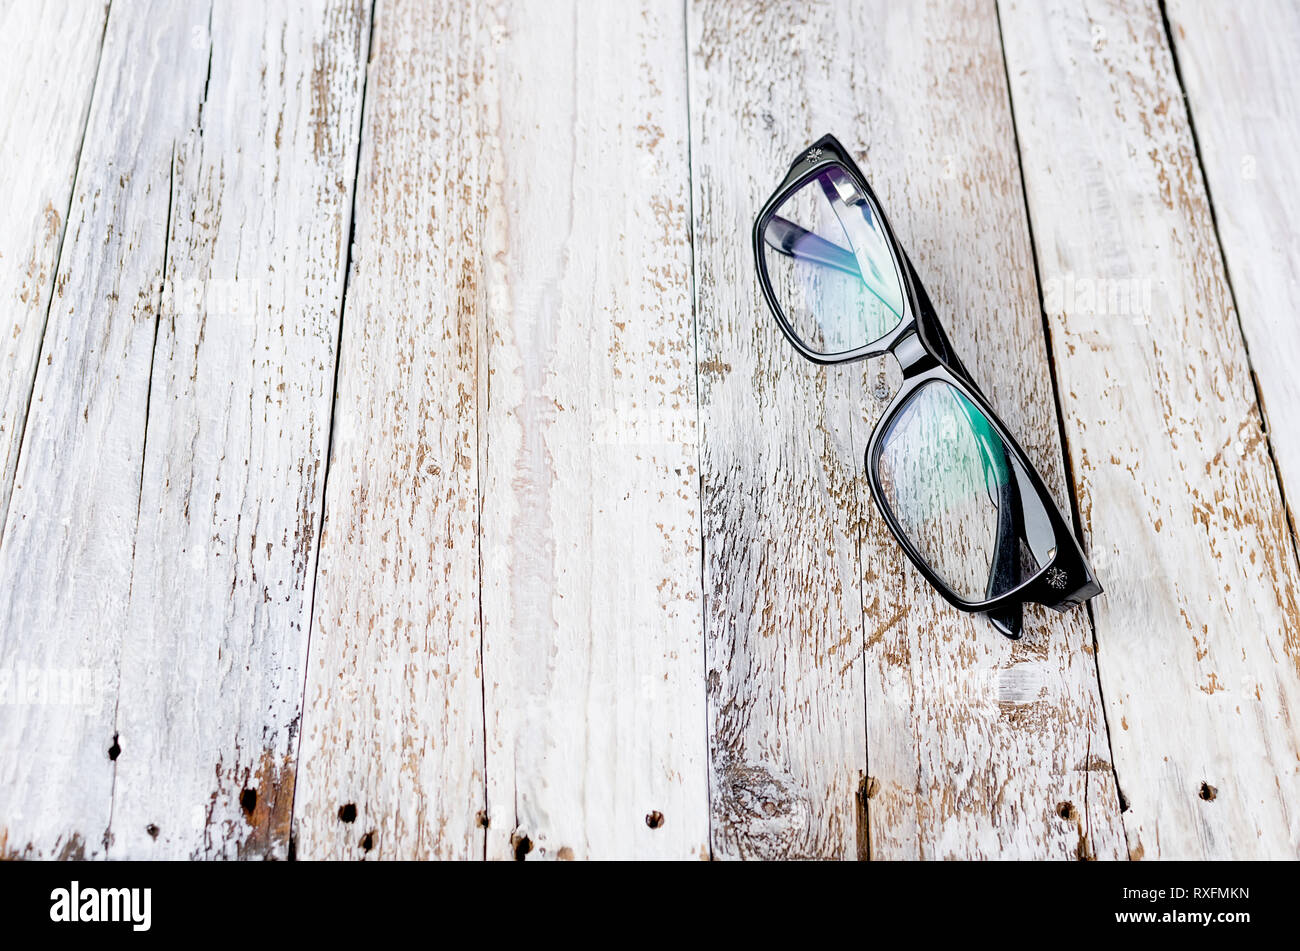 Black glasses on white wooden background. Flat lay, top view, mockup, copy space - Stock Image